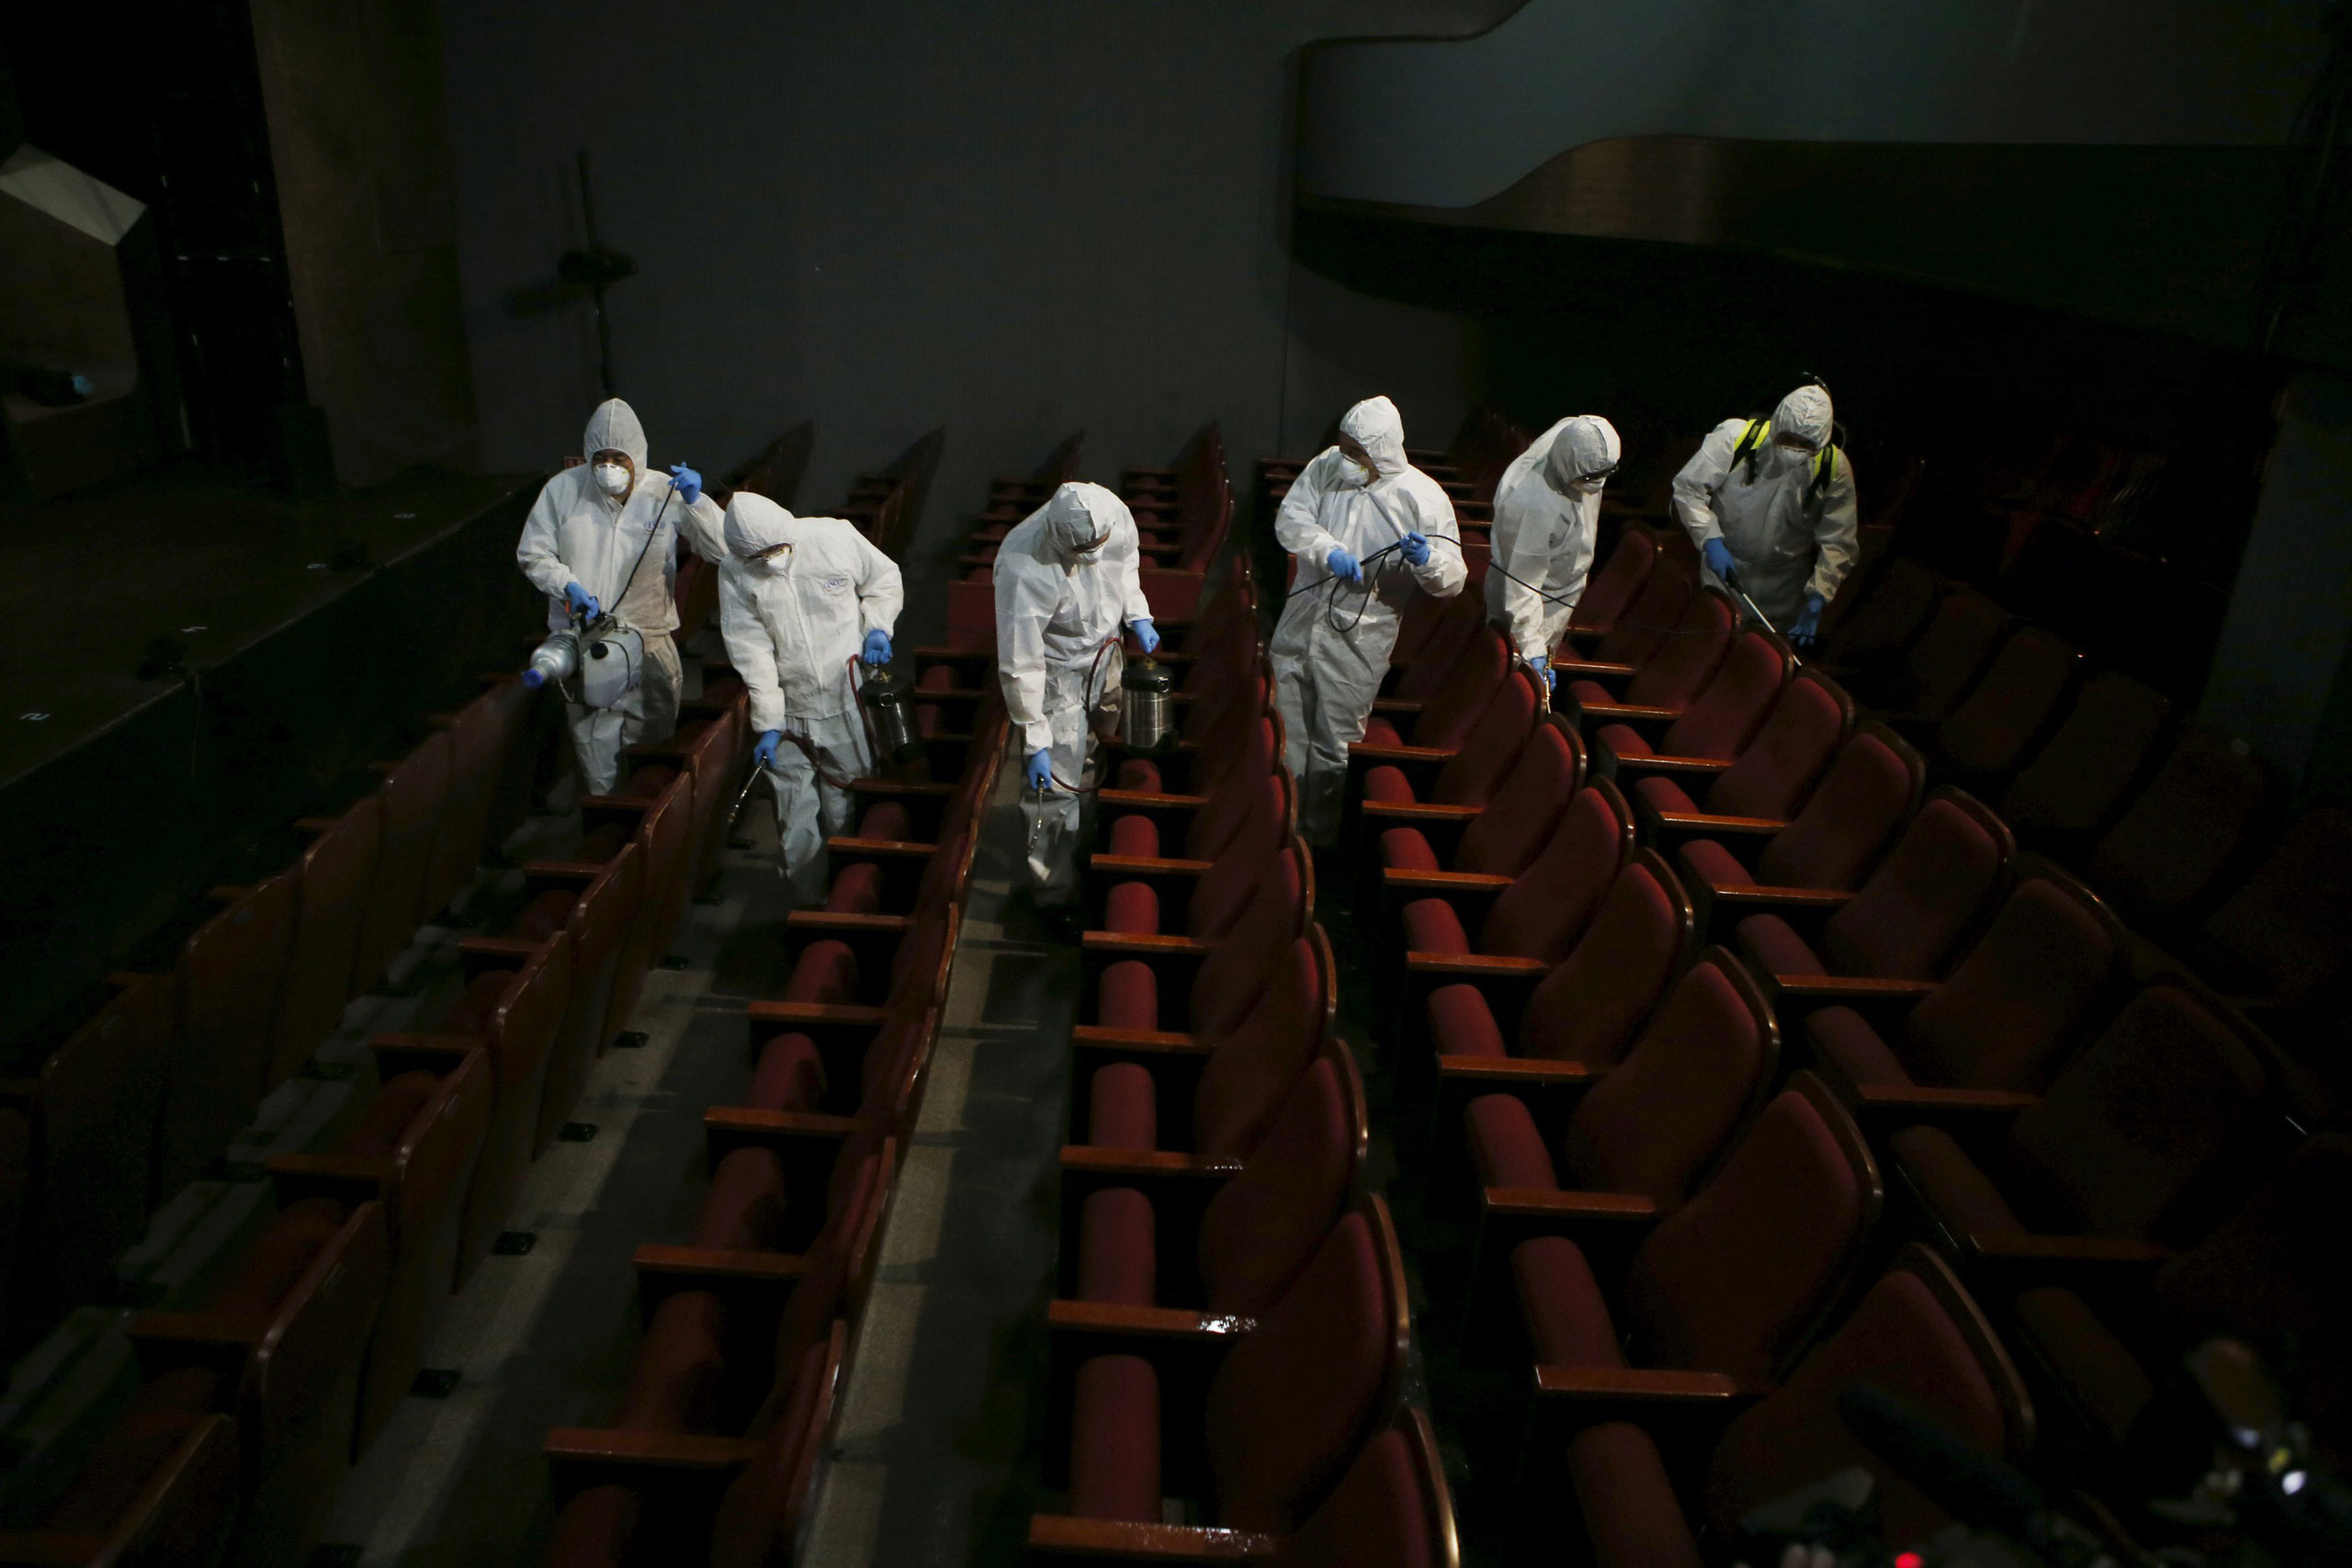 Employees from a disinfection service company sanitize the interior of a theater in Seoul, South Korea. June 18, 2015.